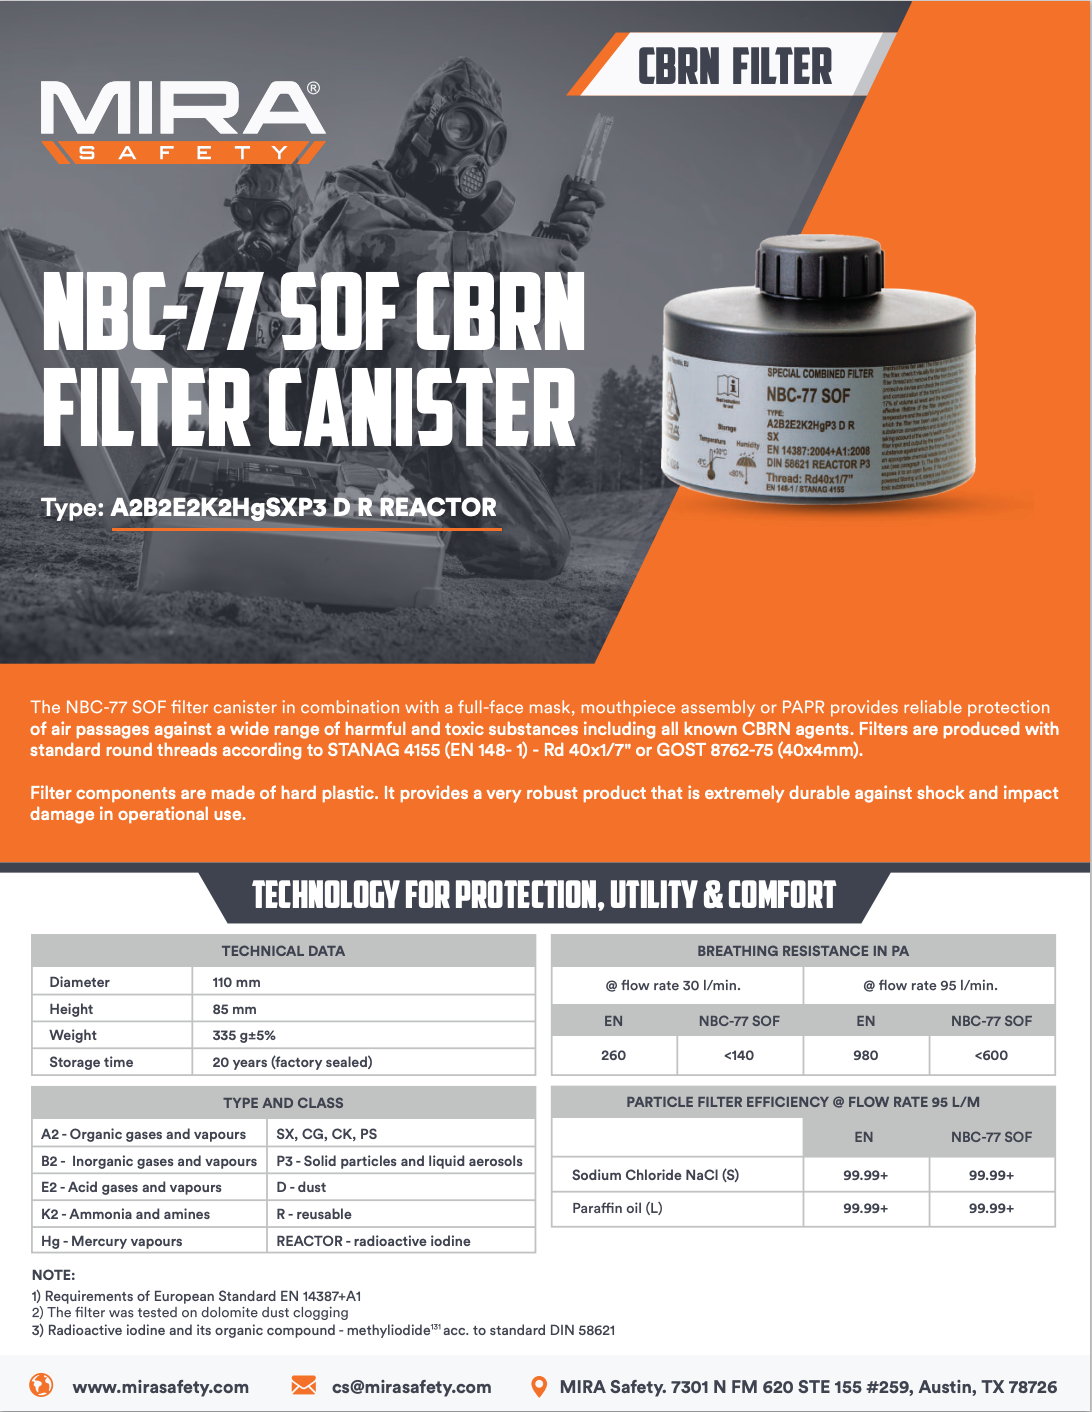 NBC-77 SOF Gas Mask Filter Brochure